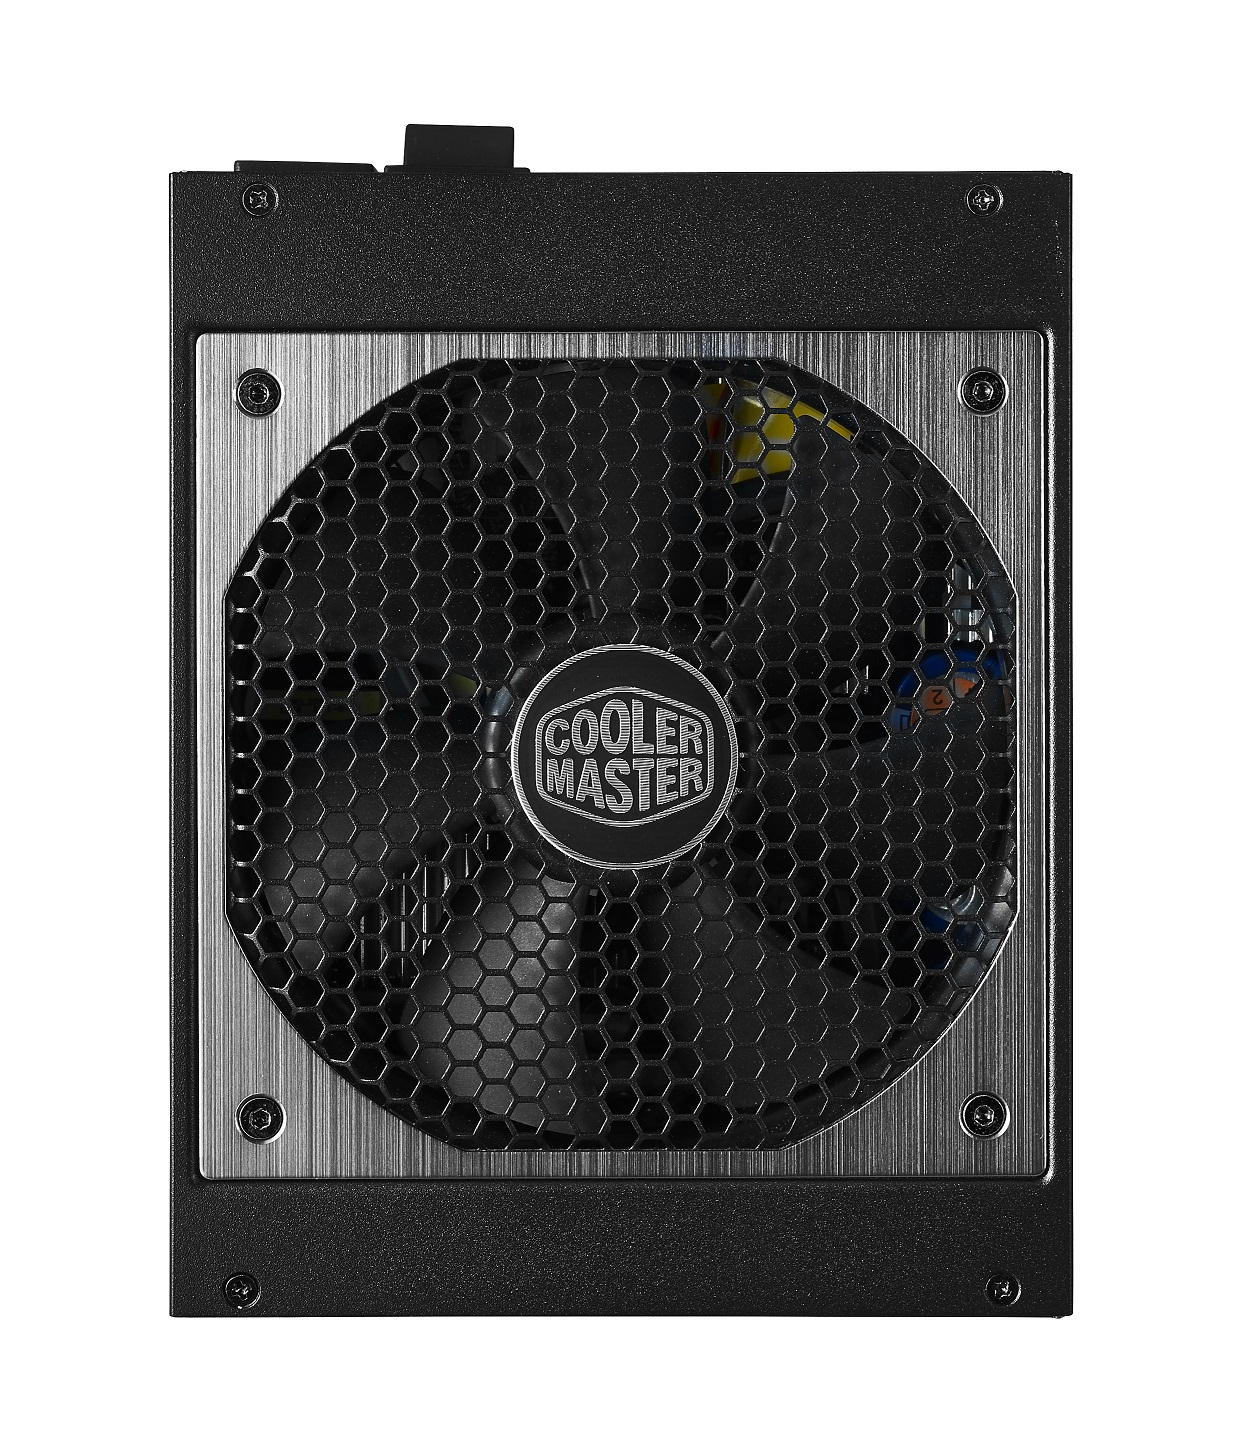 COOLER MASTER RSC00-AFBAG1-EU V1200 POWER SUPPLY UNIT 1200 W ATX BLACK